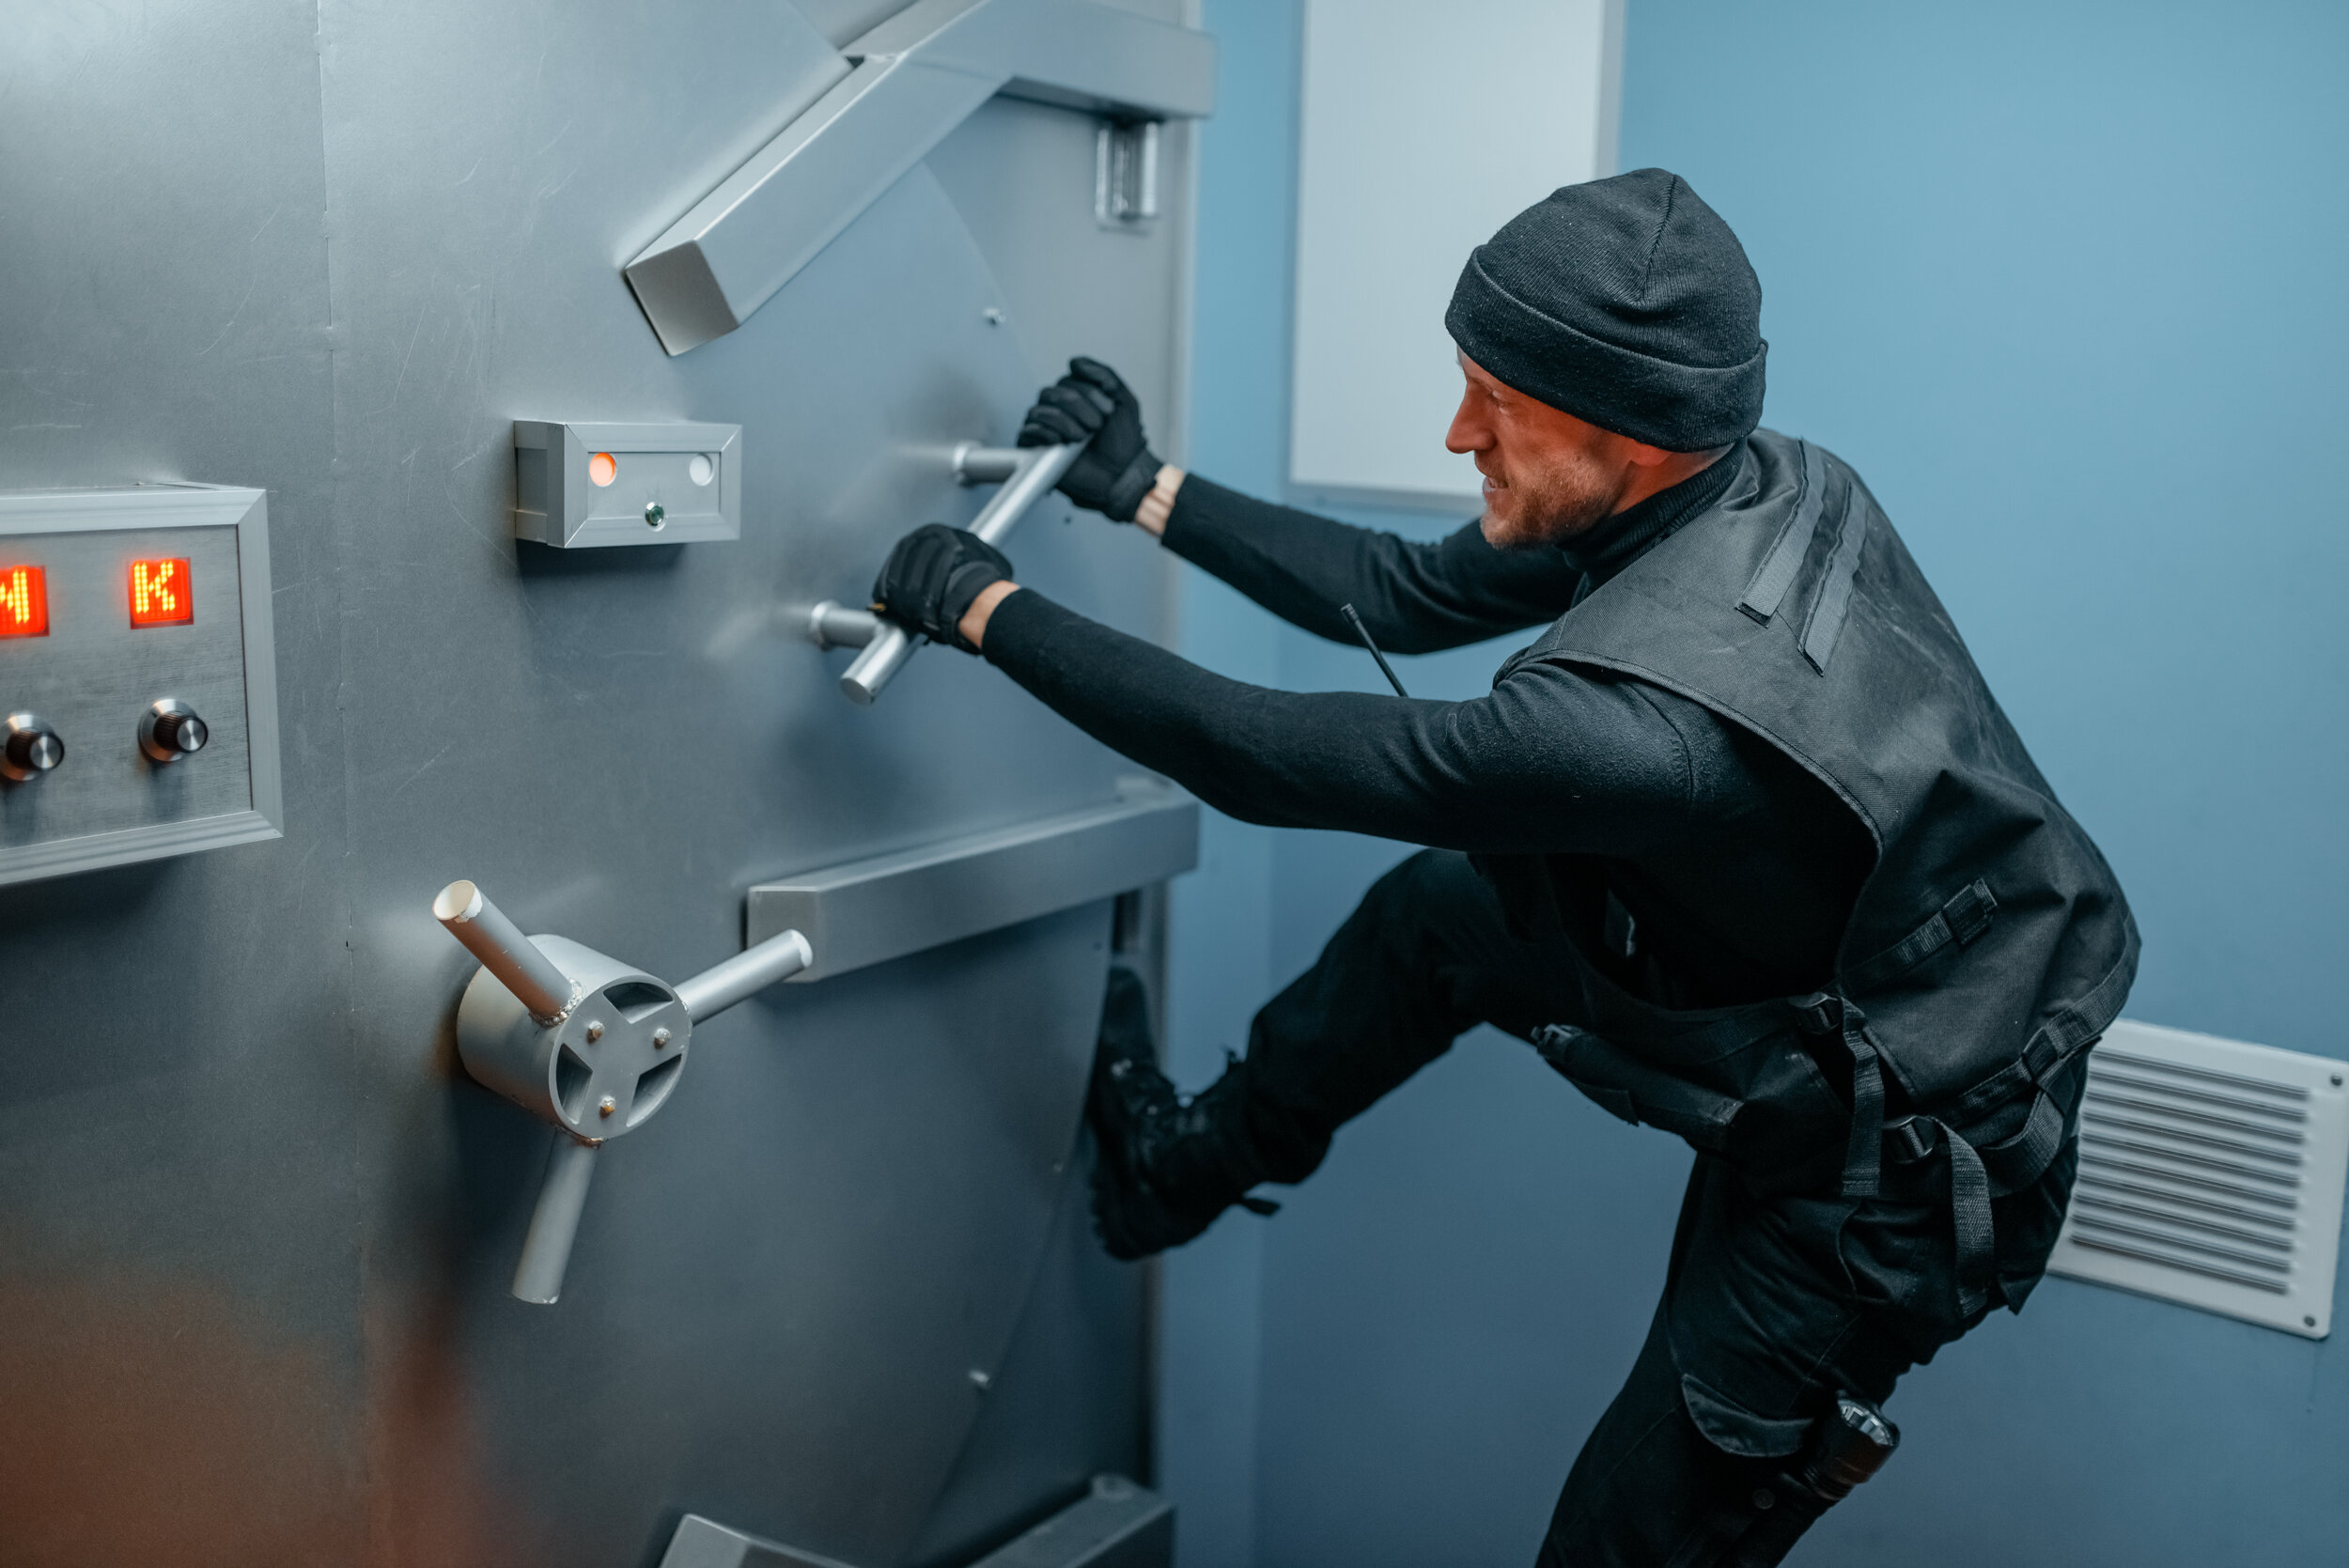 Robber in black uniform trying to break vault lock